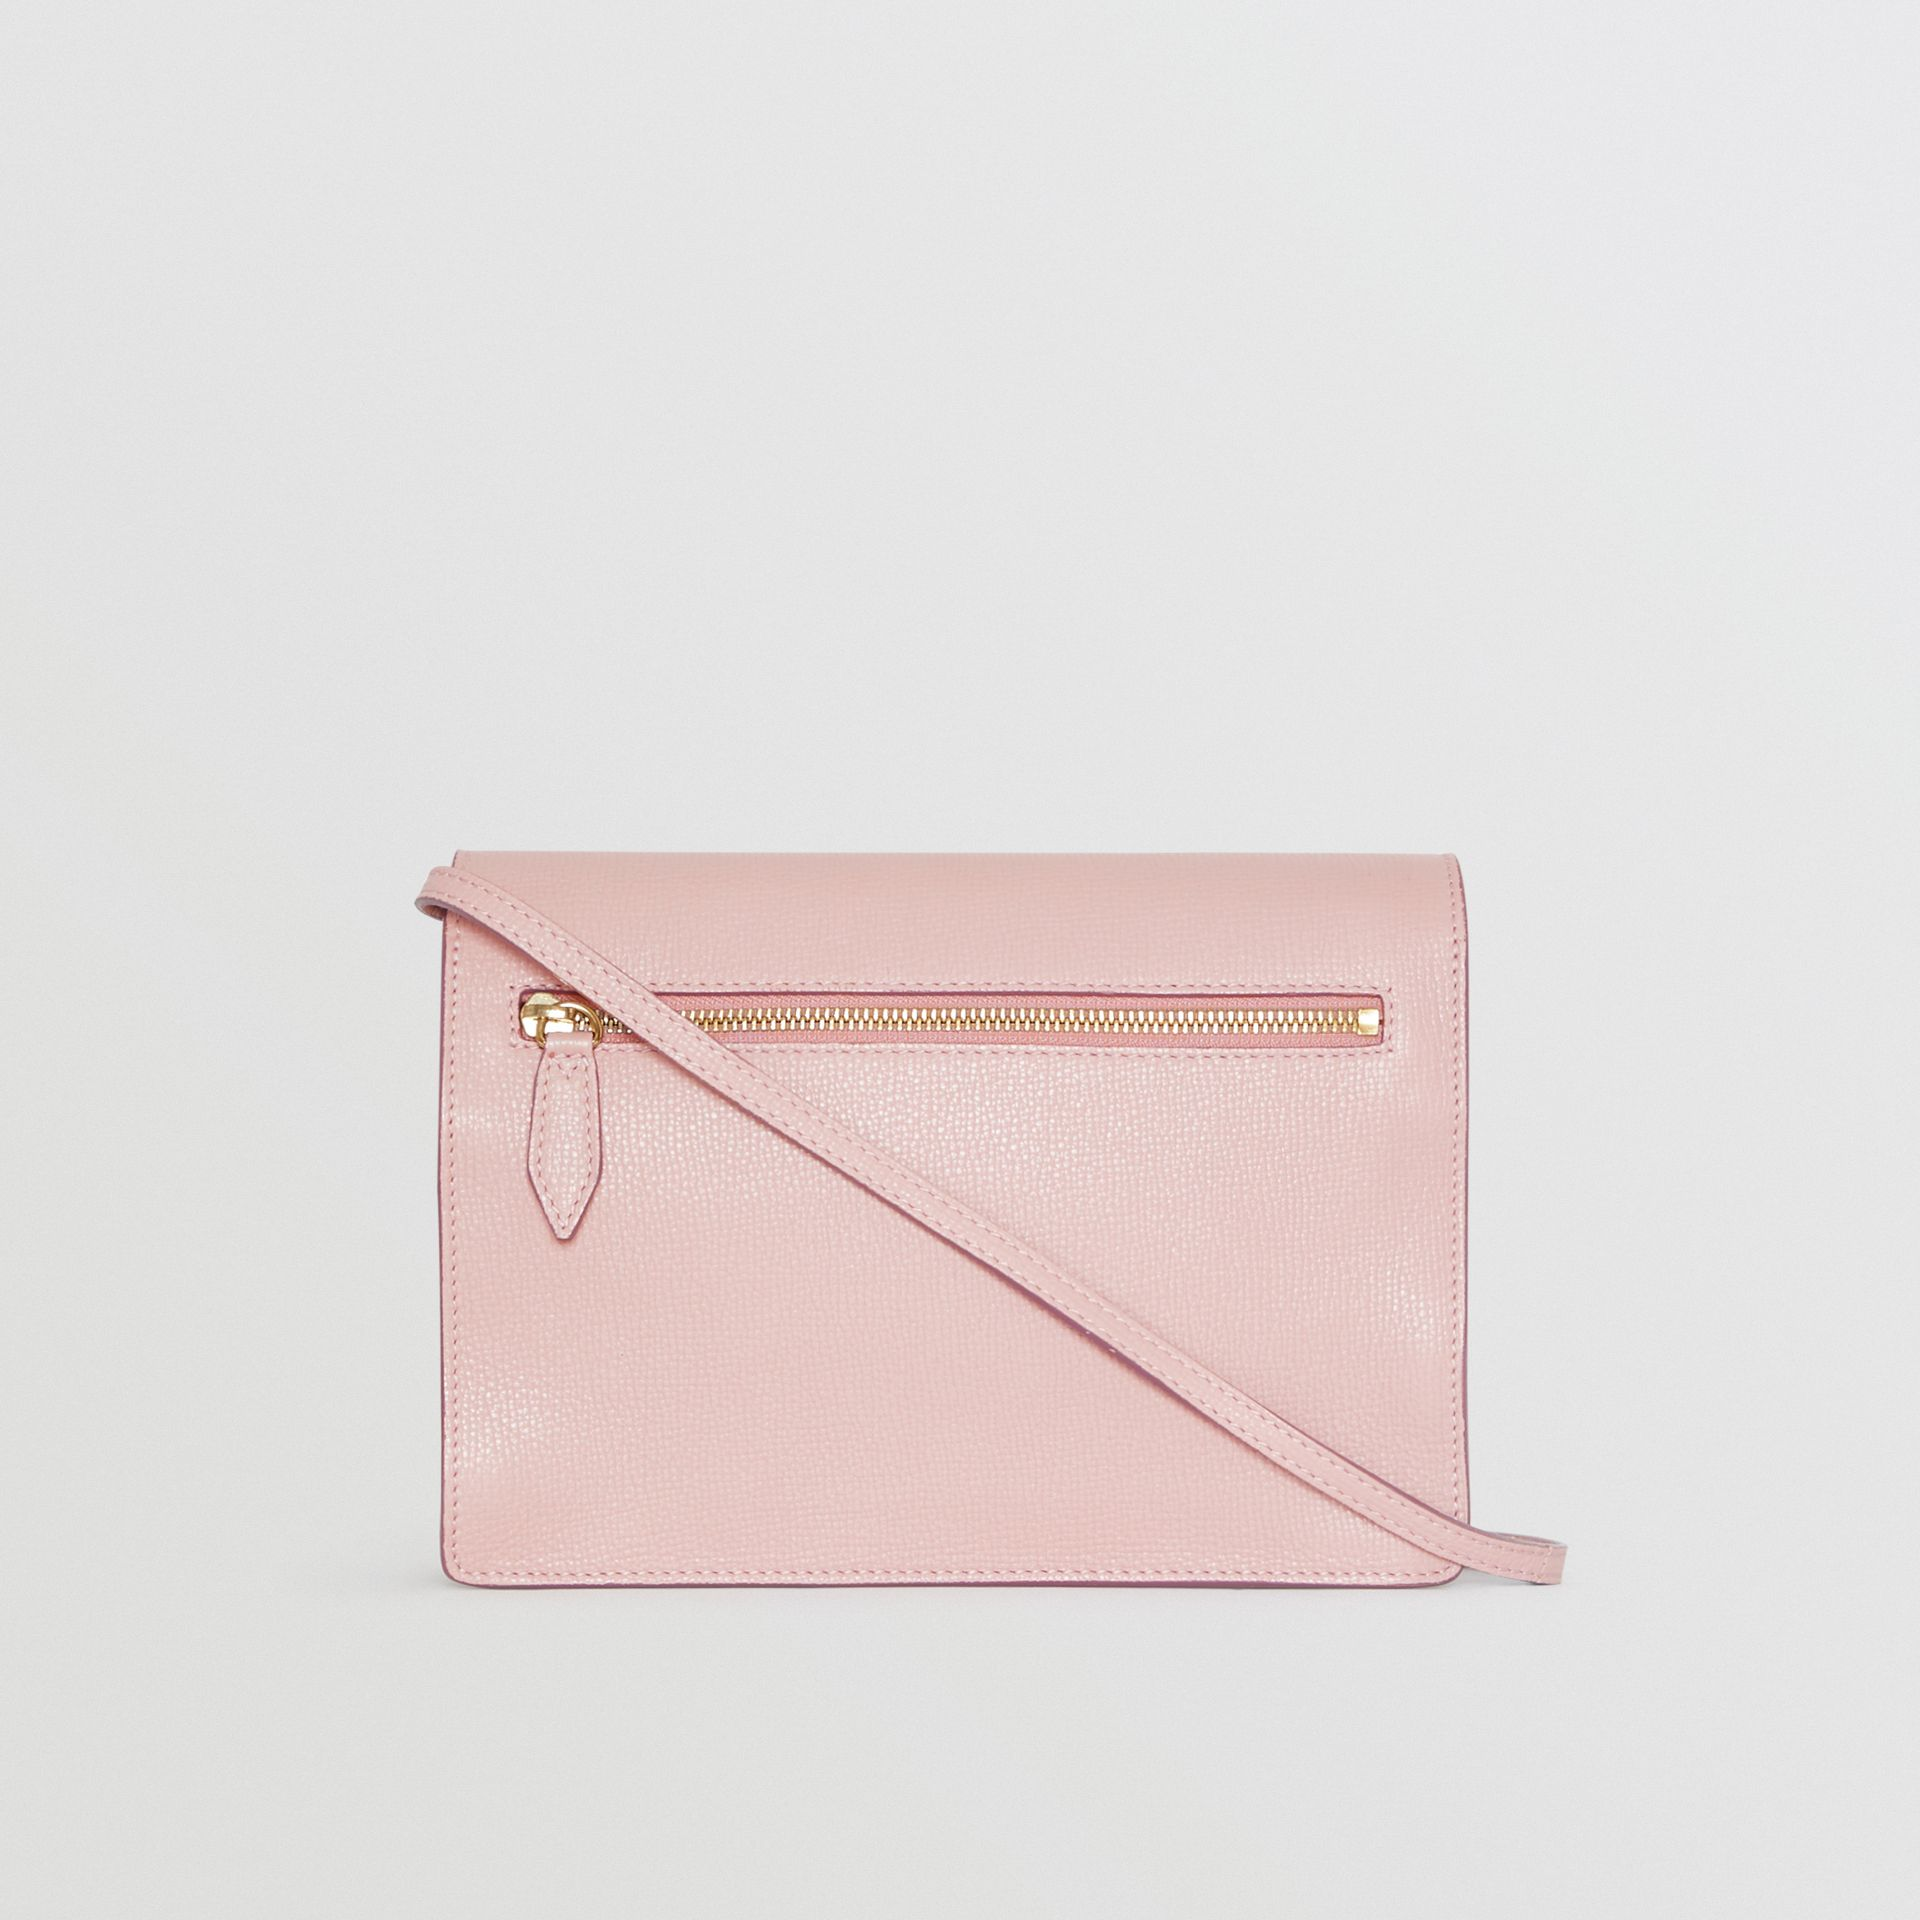 Small Leather and House Check Crossbody Bag in Pale Orchid - Women | Burberry United Kingdom - gallery image 7